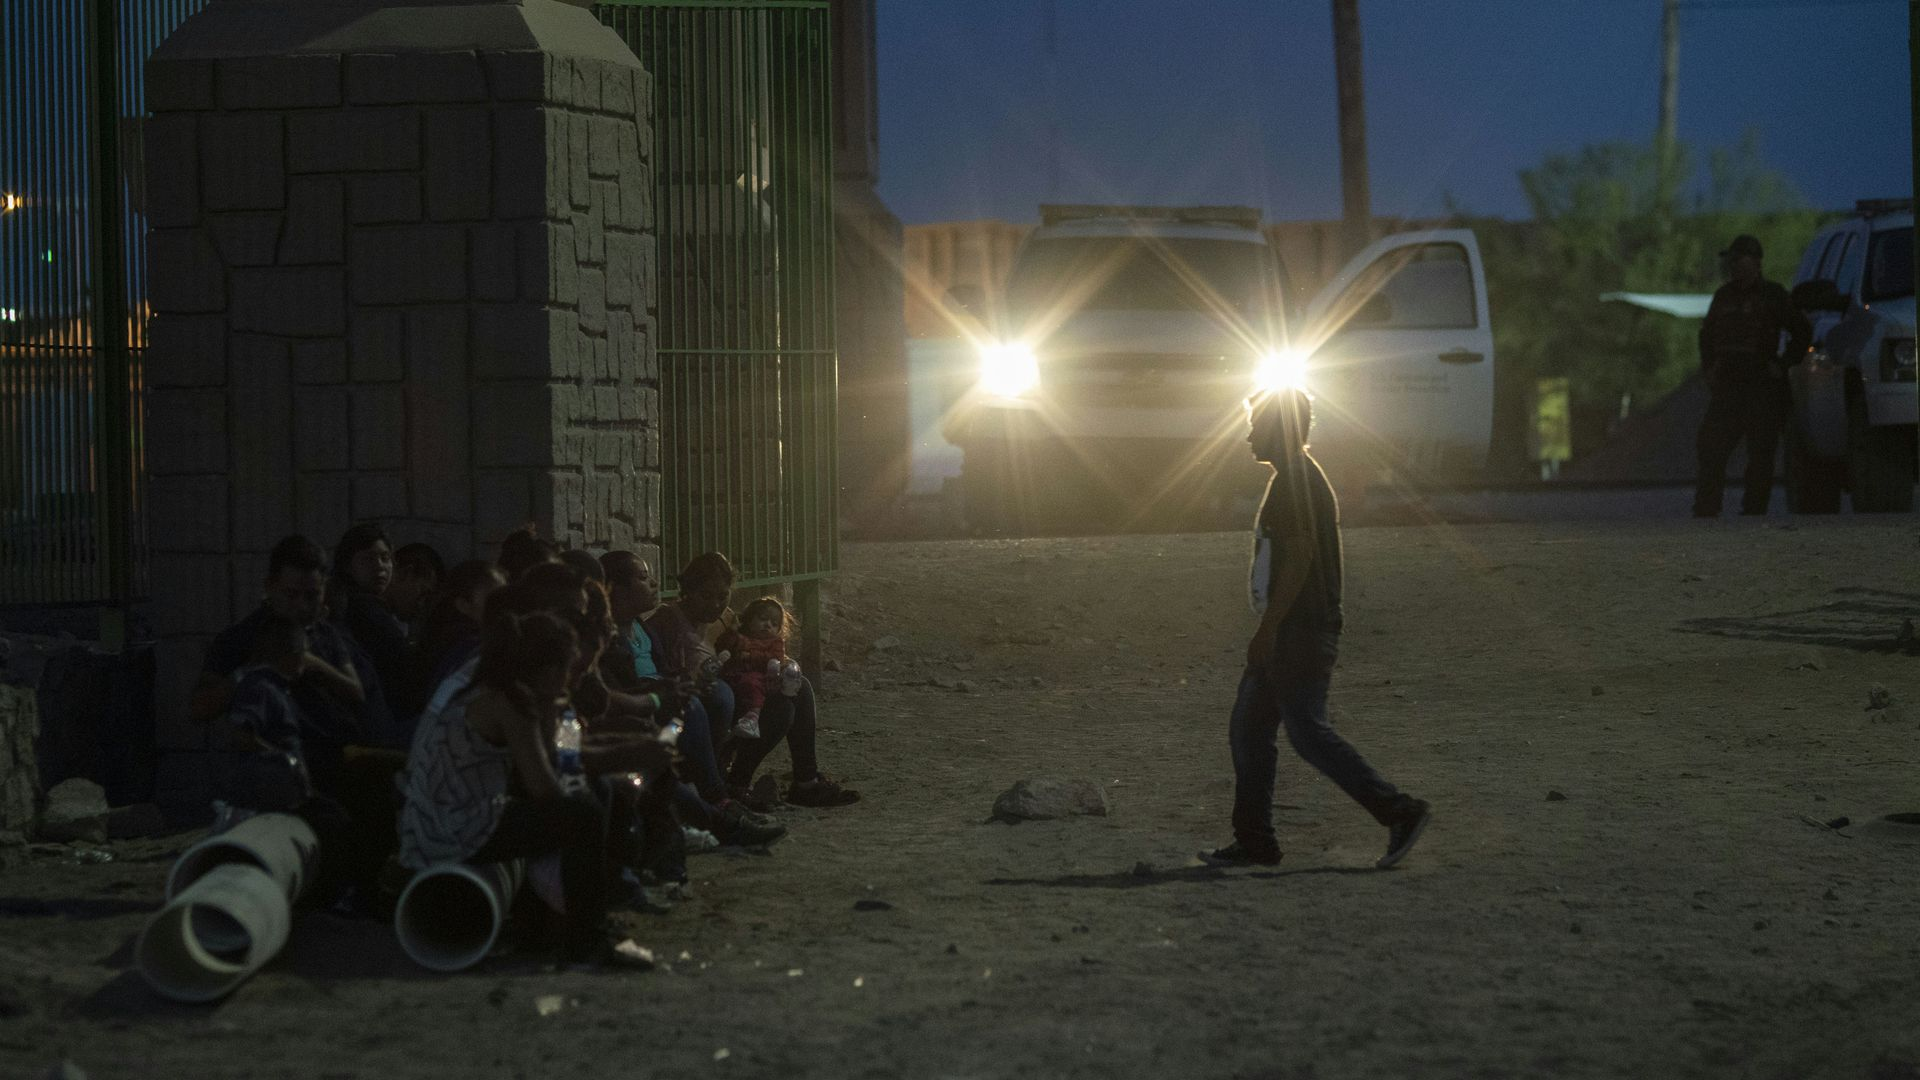 Migrants waiting in the dark near the border to be taken to a border patrol processing center.